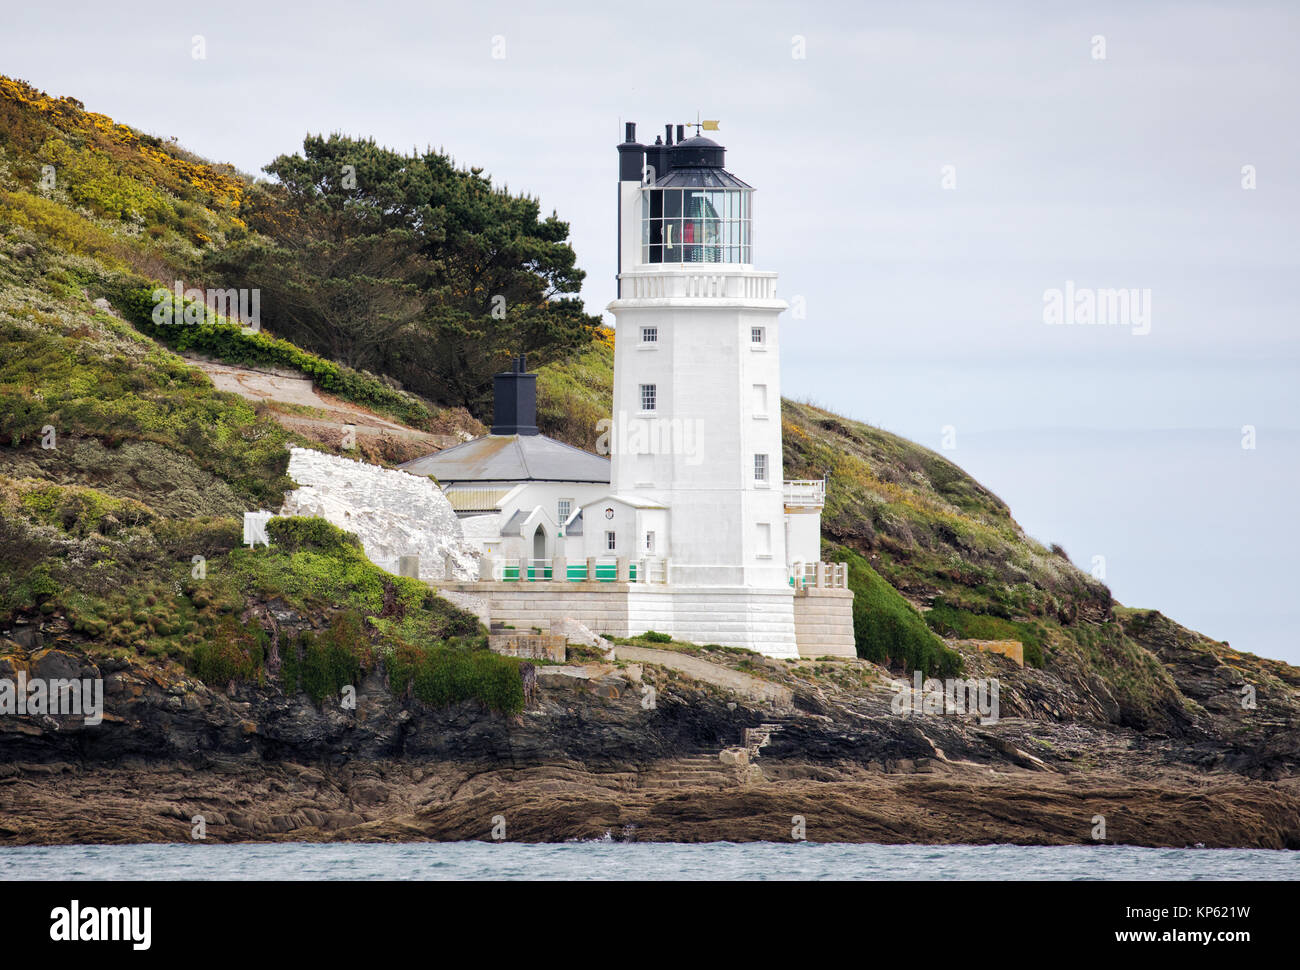 St Anthony's Head lighthouse on St Anthony Head on the Roseland peninsula near Falmouth in Cornwall UK Stock Photo